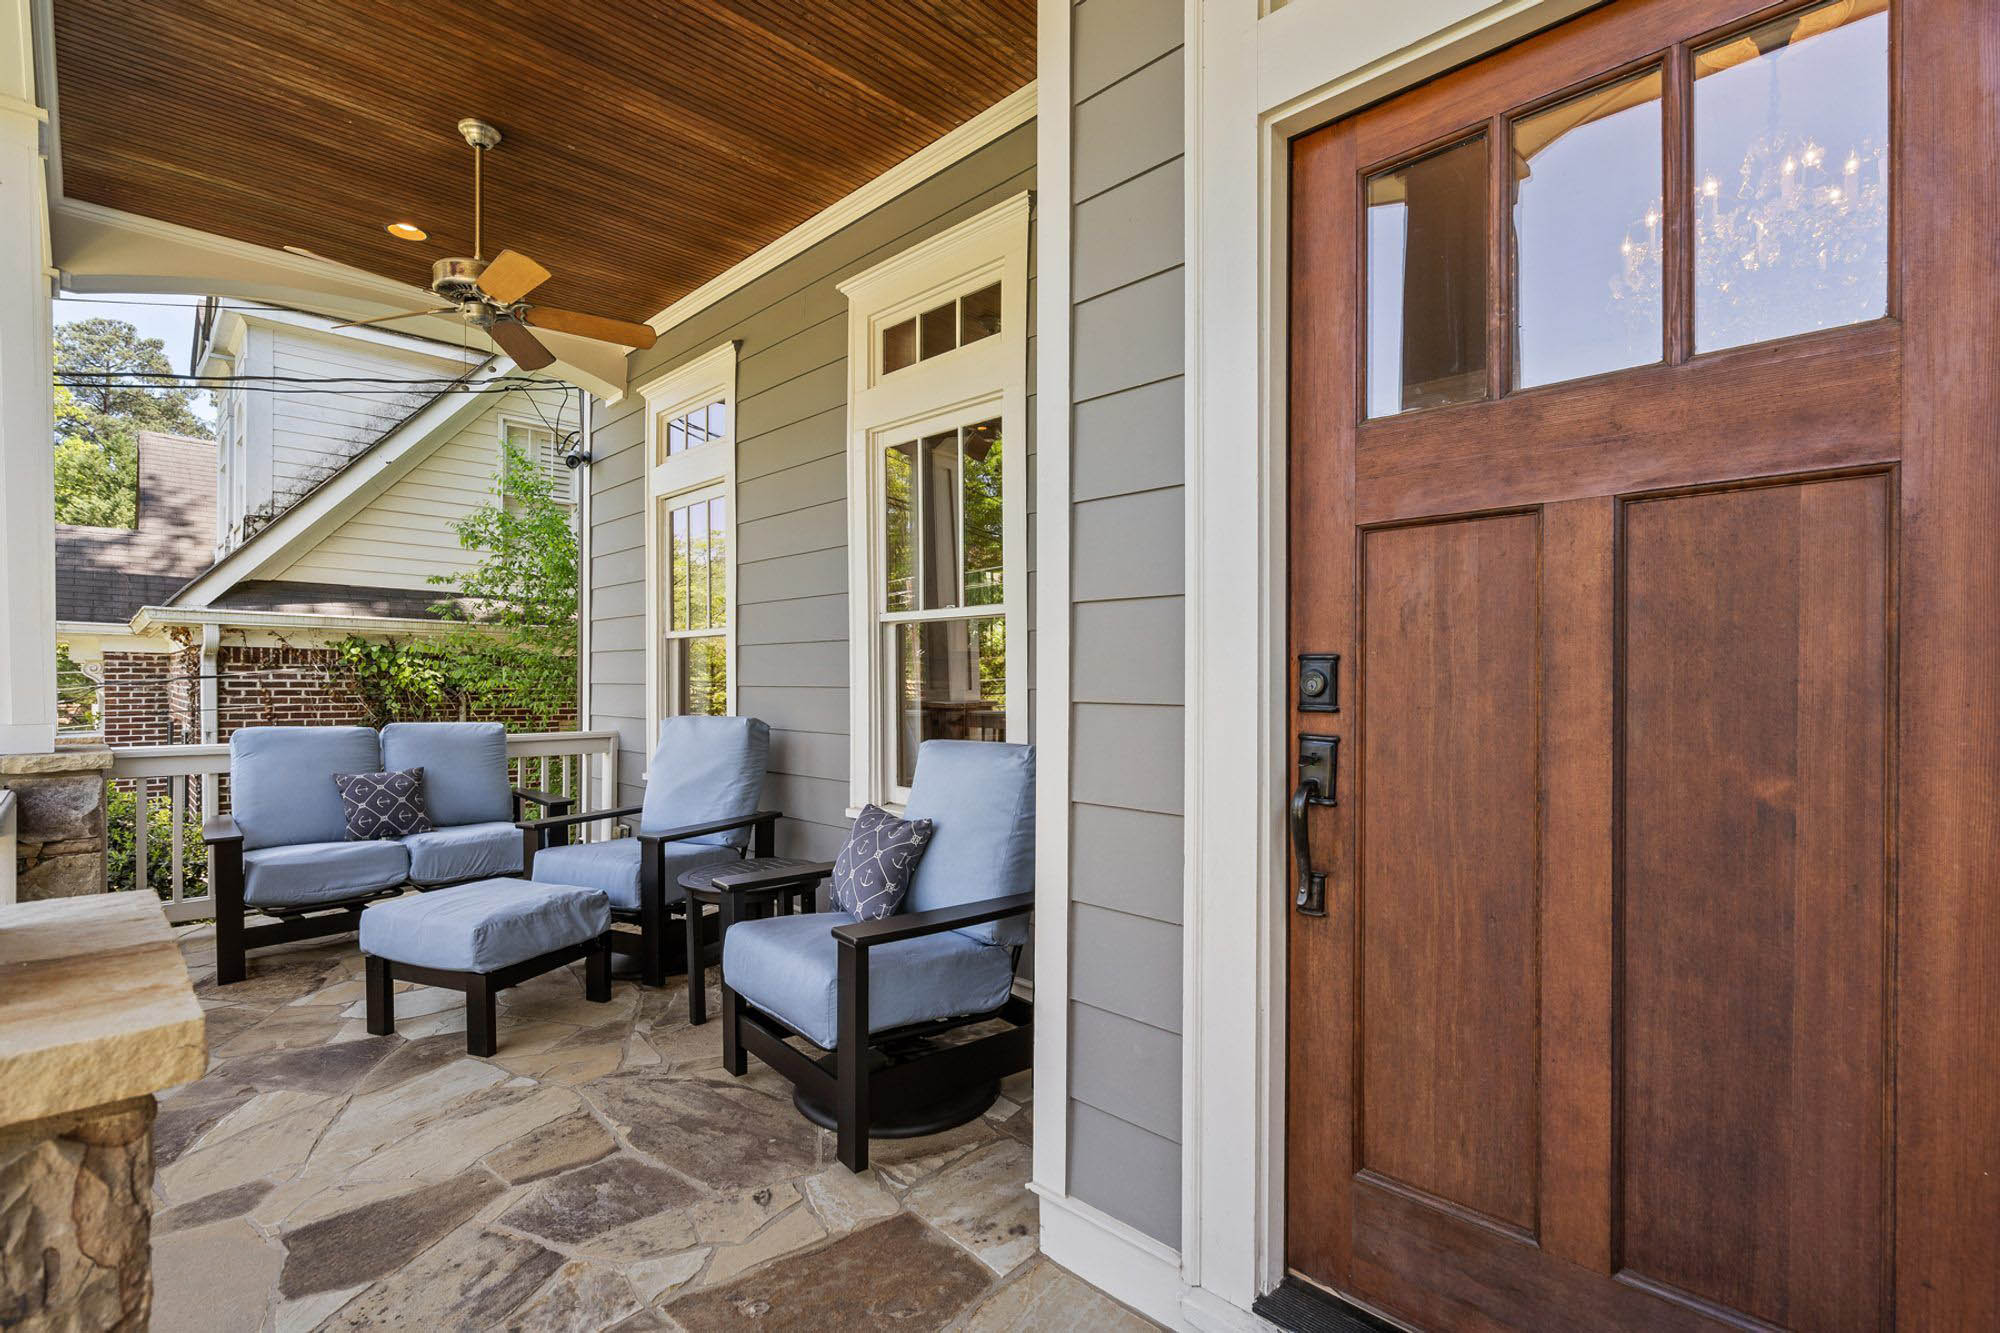 front porch design with black chairs & blue cushions. Stone floor and columns, wood front door, gray siding